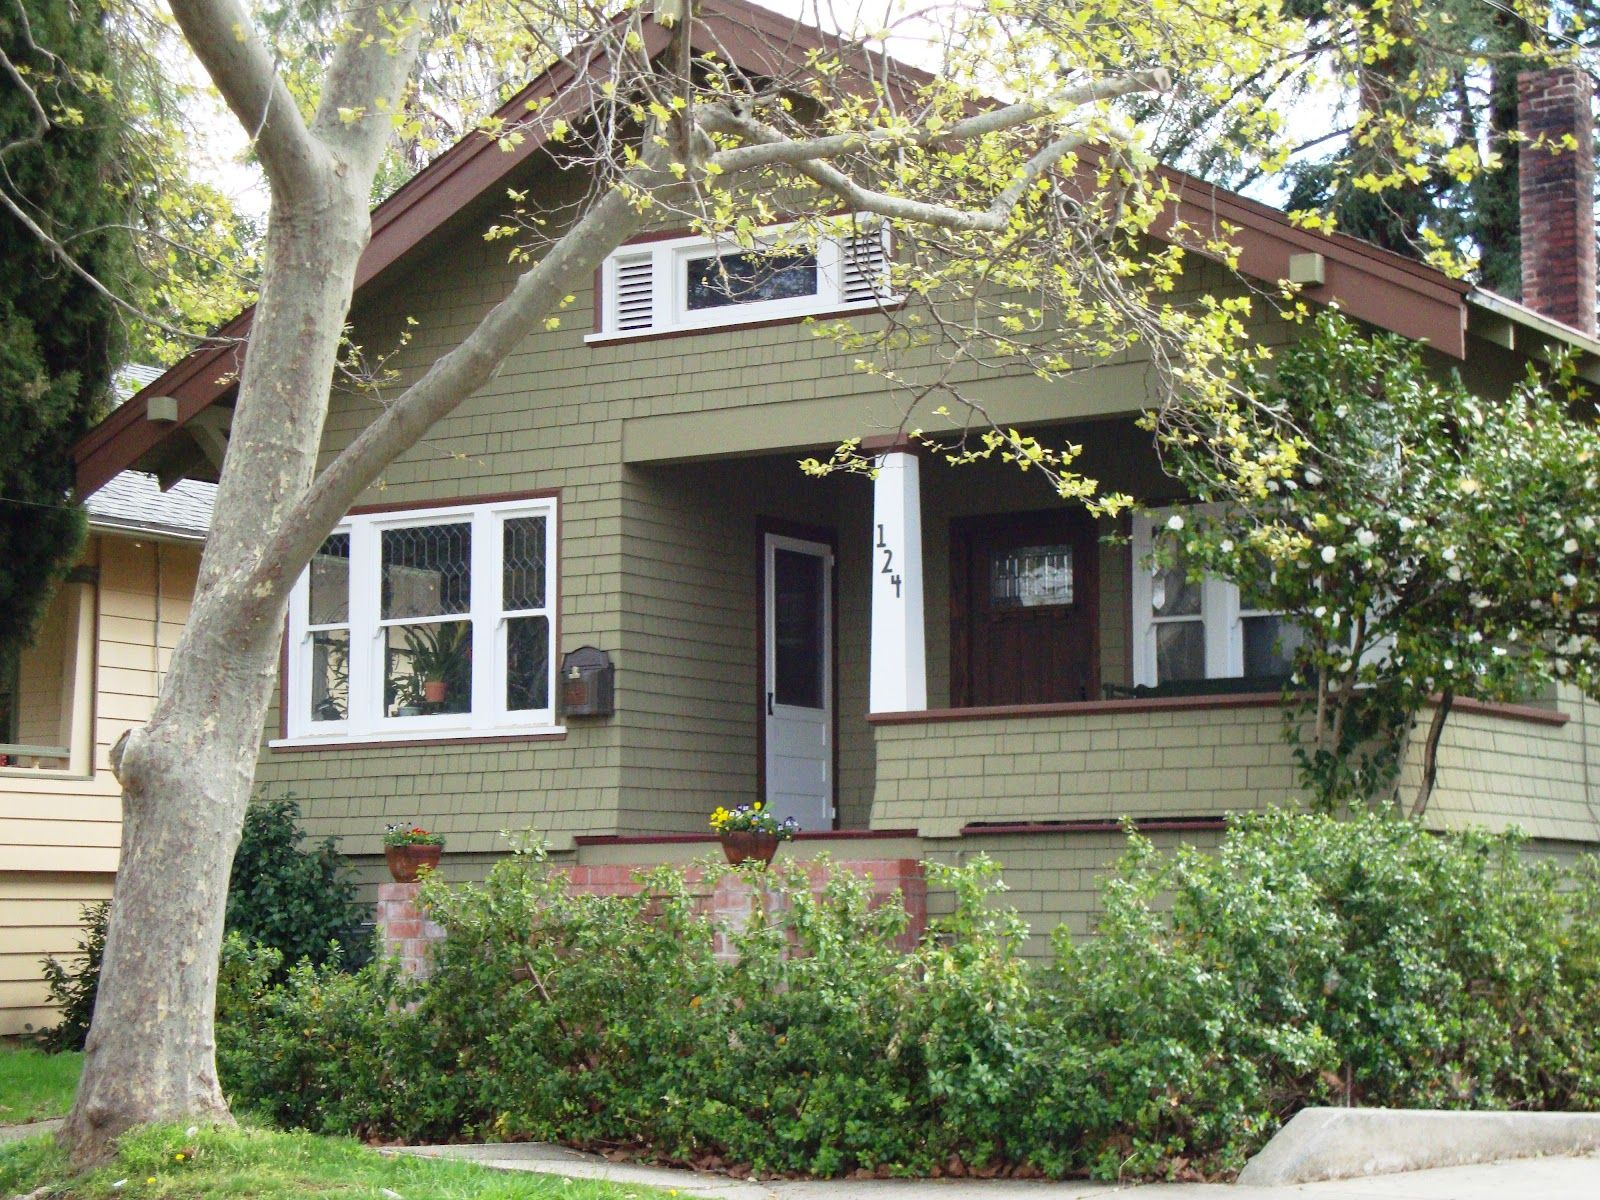 Exterior home colors green - Popular Exterior House Paint Colors Suggested The Exterior Color Be Updated To Sage Green